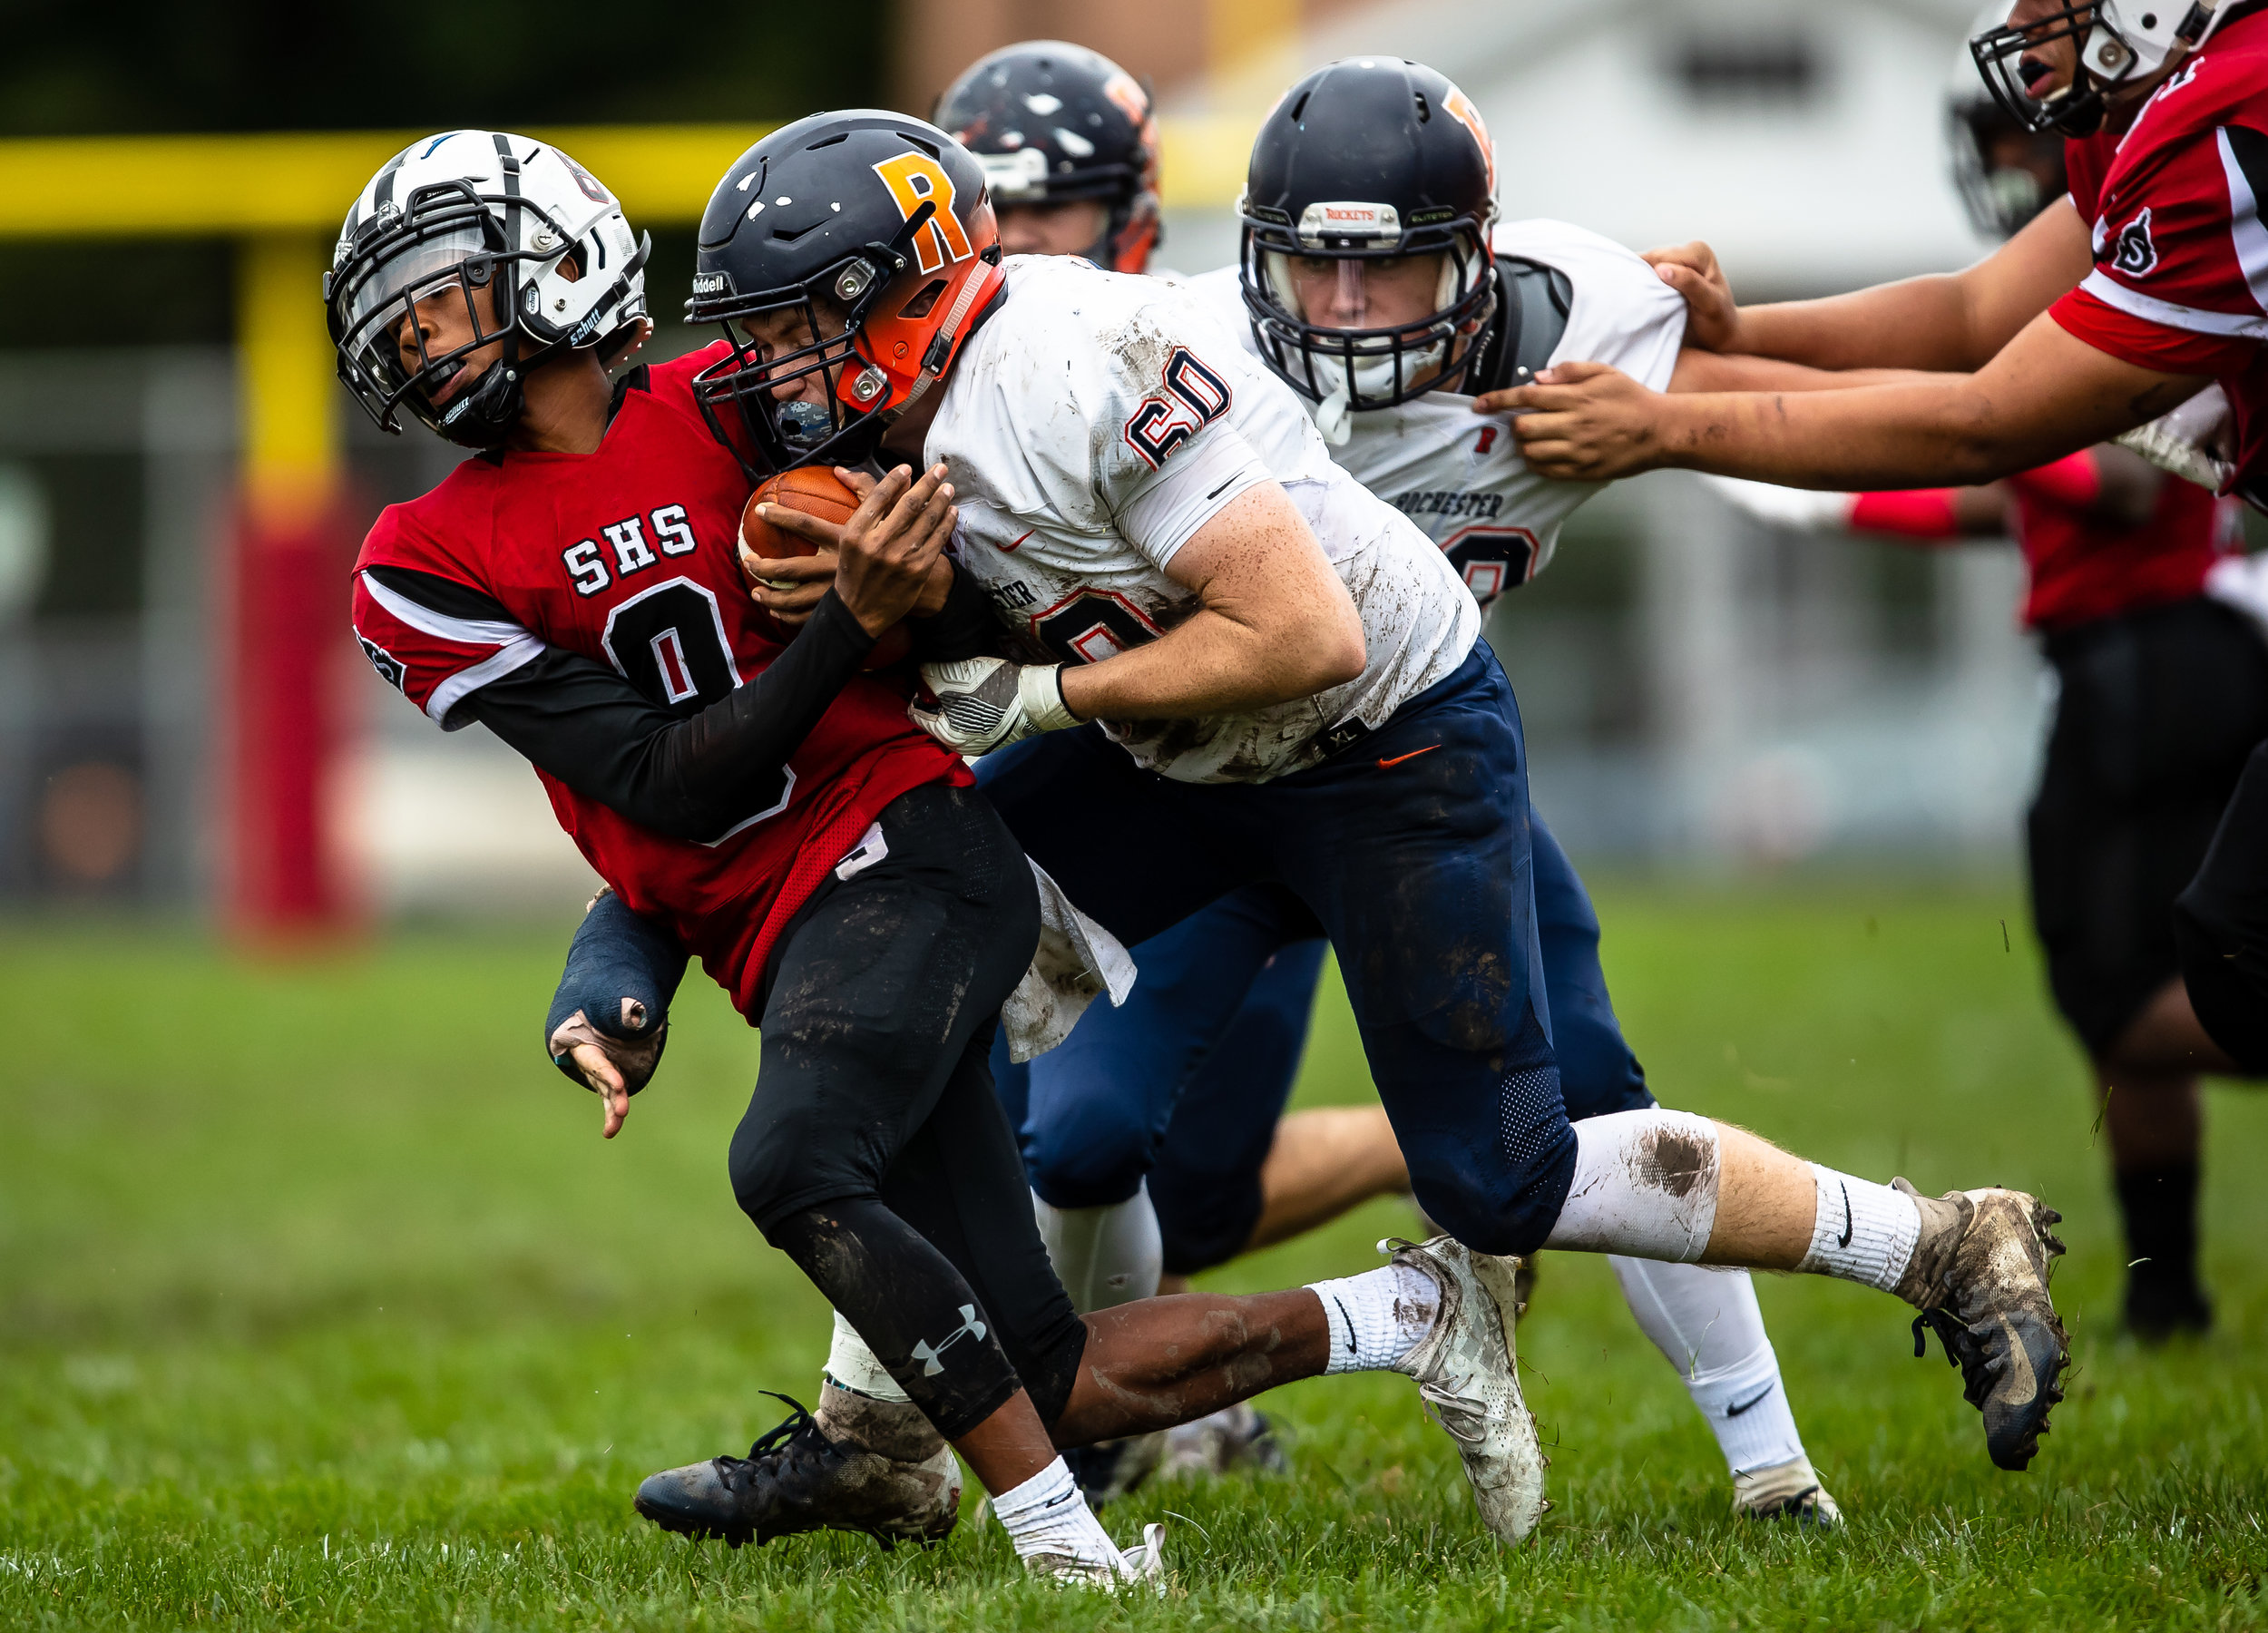 Rochester's Dalton Garecht (60) sacks Springfield quarterback Rashad Rochelle (8) for a loss in the first half at Memorial Stadium, Saturday, Oct. 6, 2018, in Springfield, Ill. [Justin L. Fowler/The State Journal-Register]